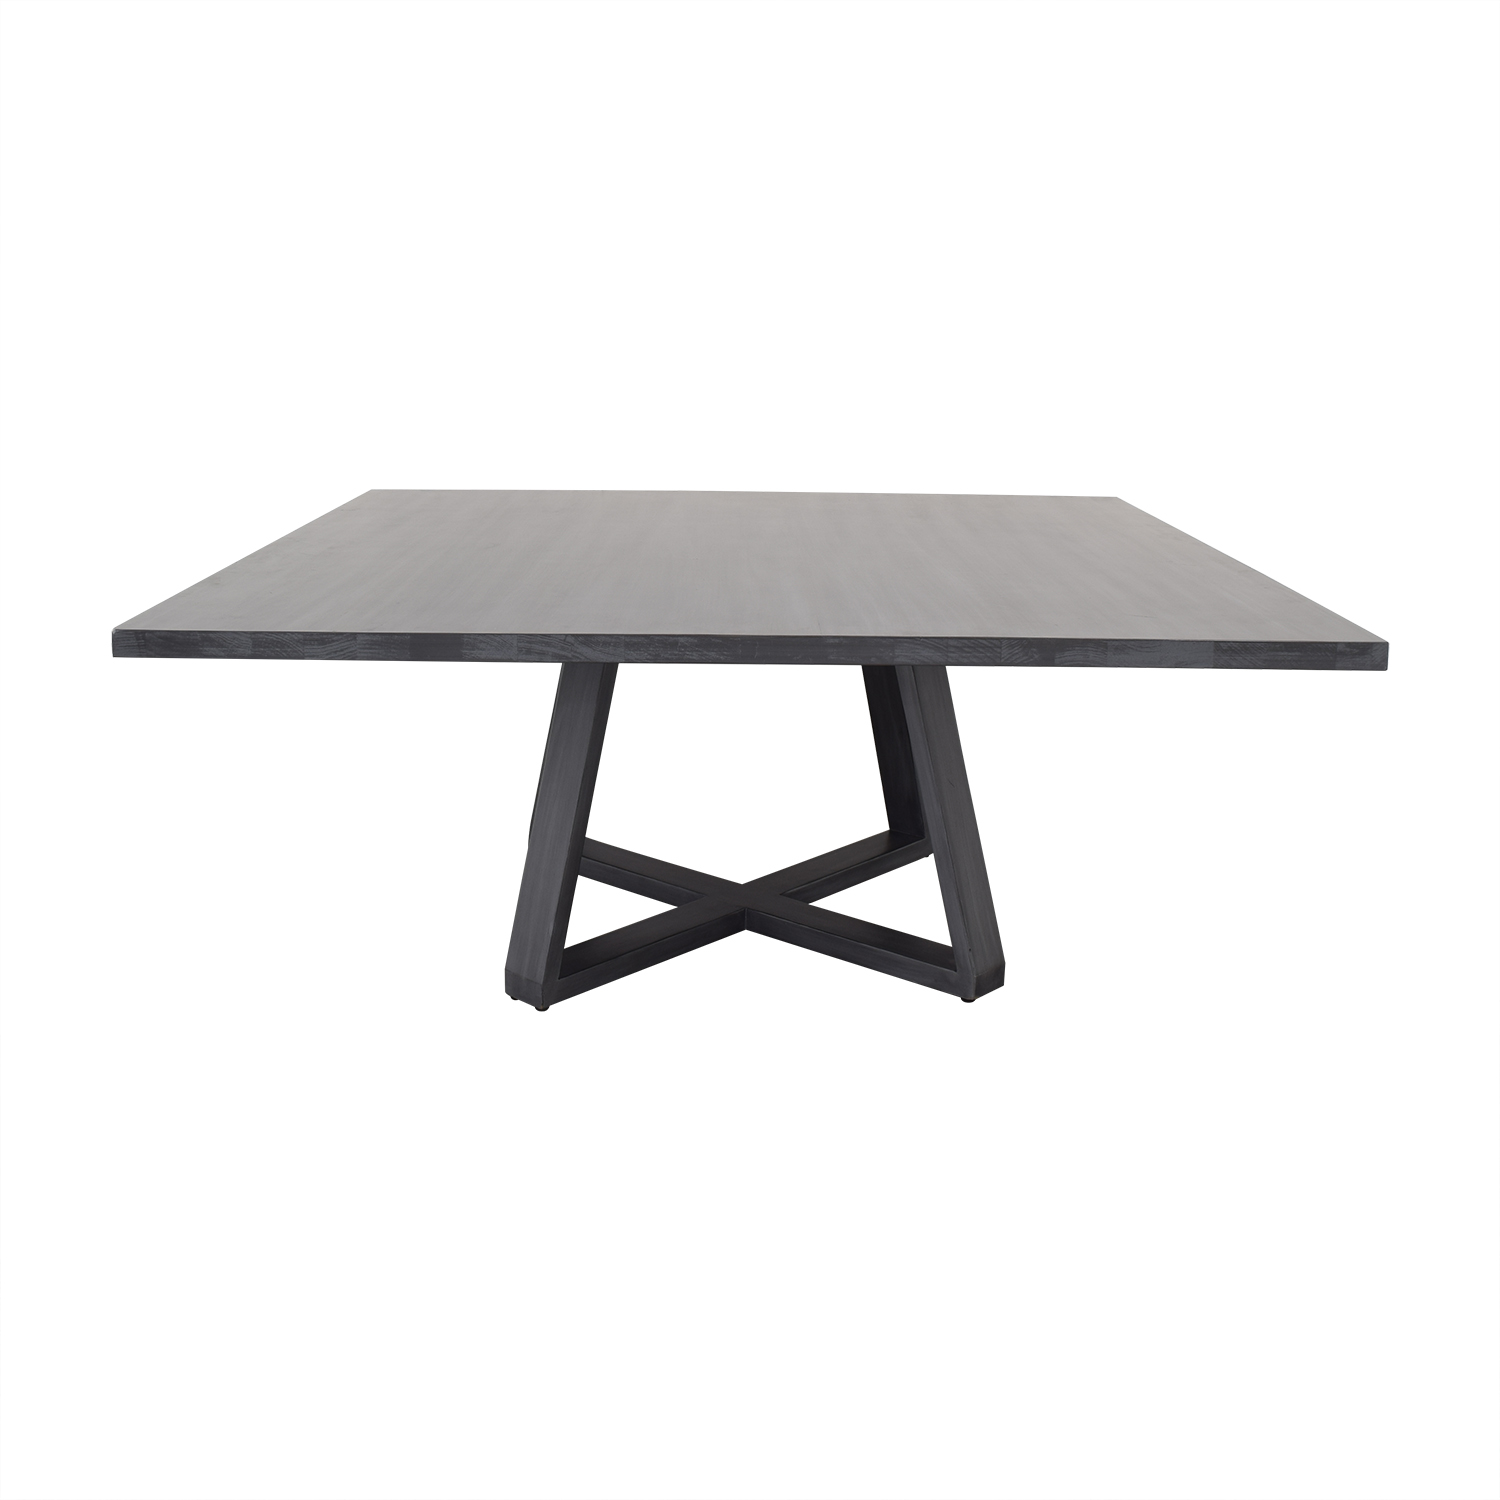 buy South Cone Furniture South Cone Furniture Andre Square Dining Table online